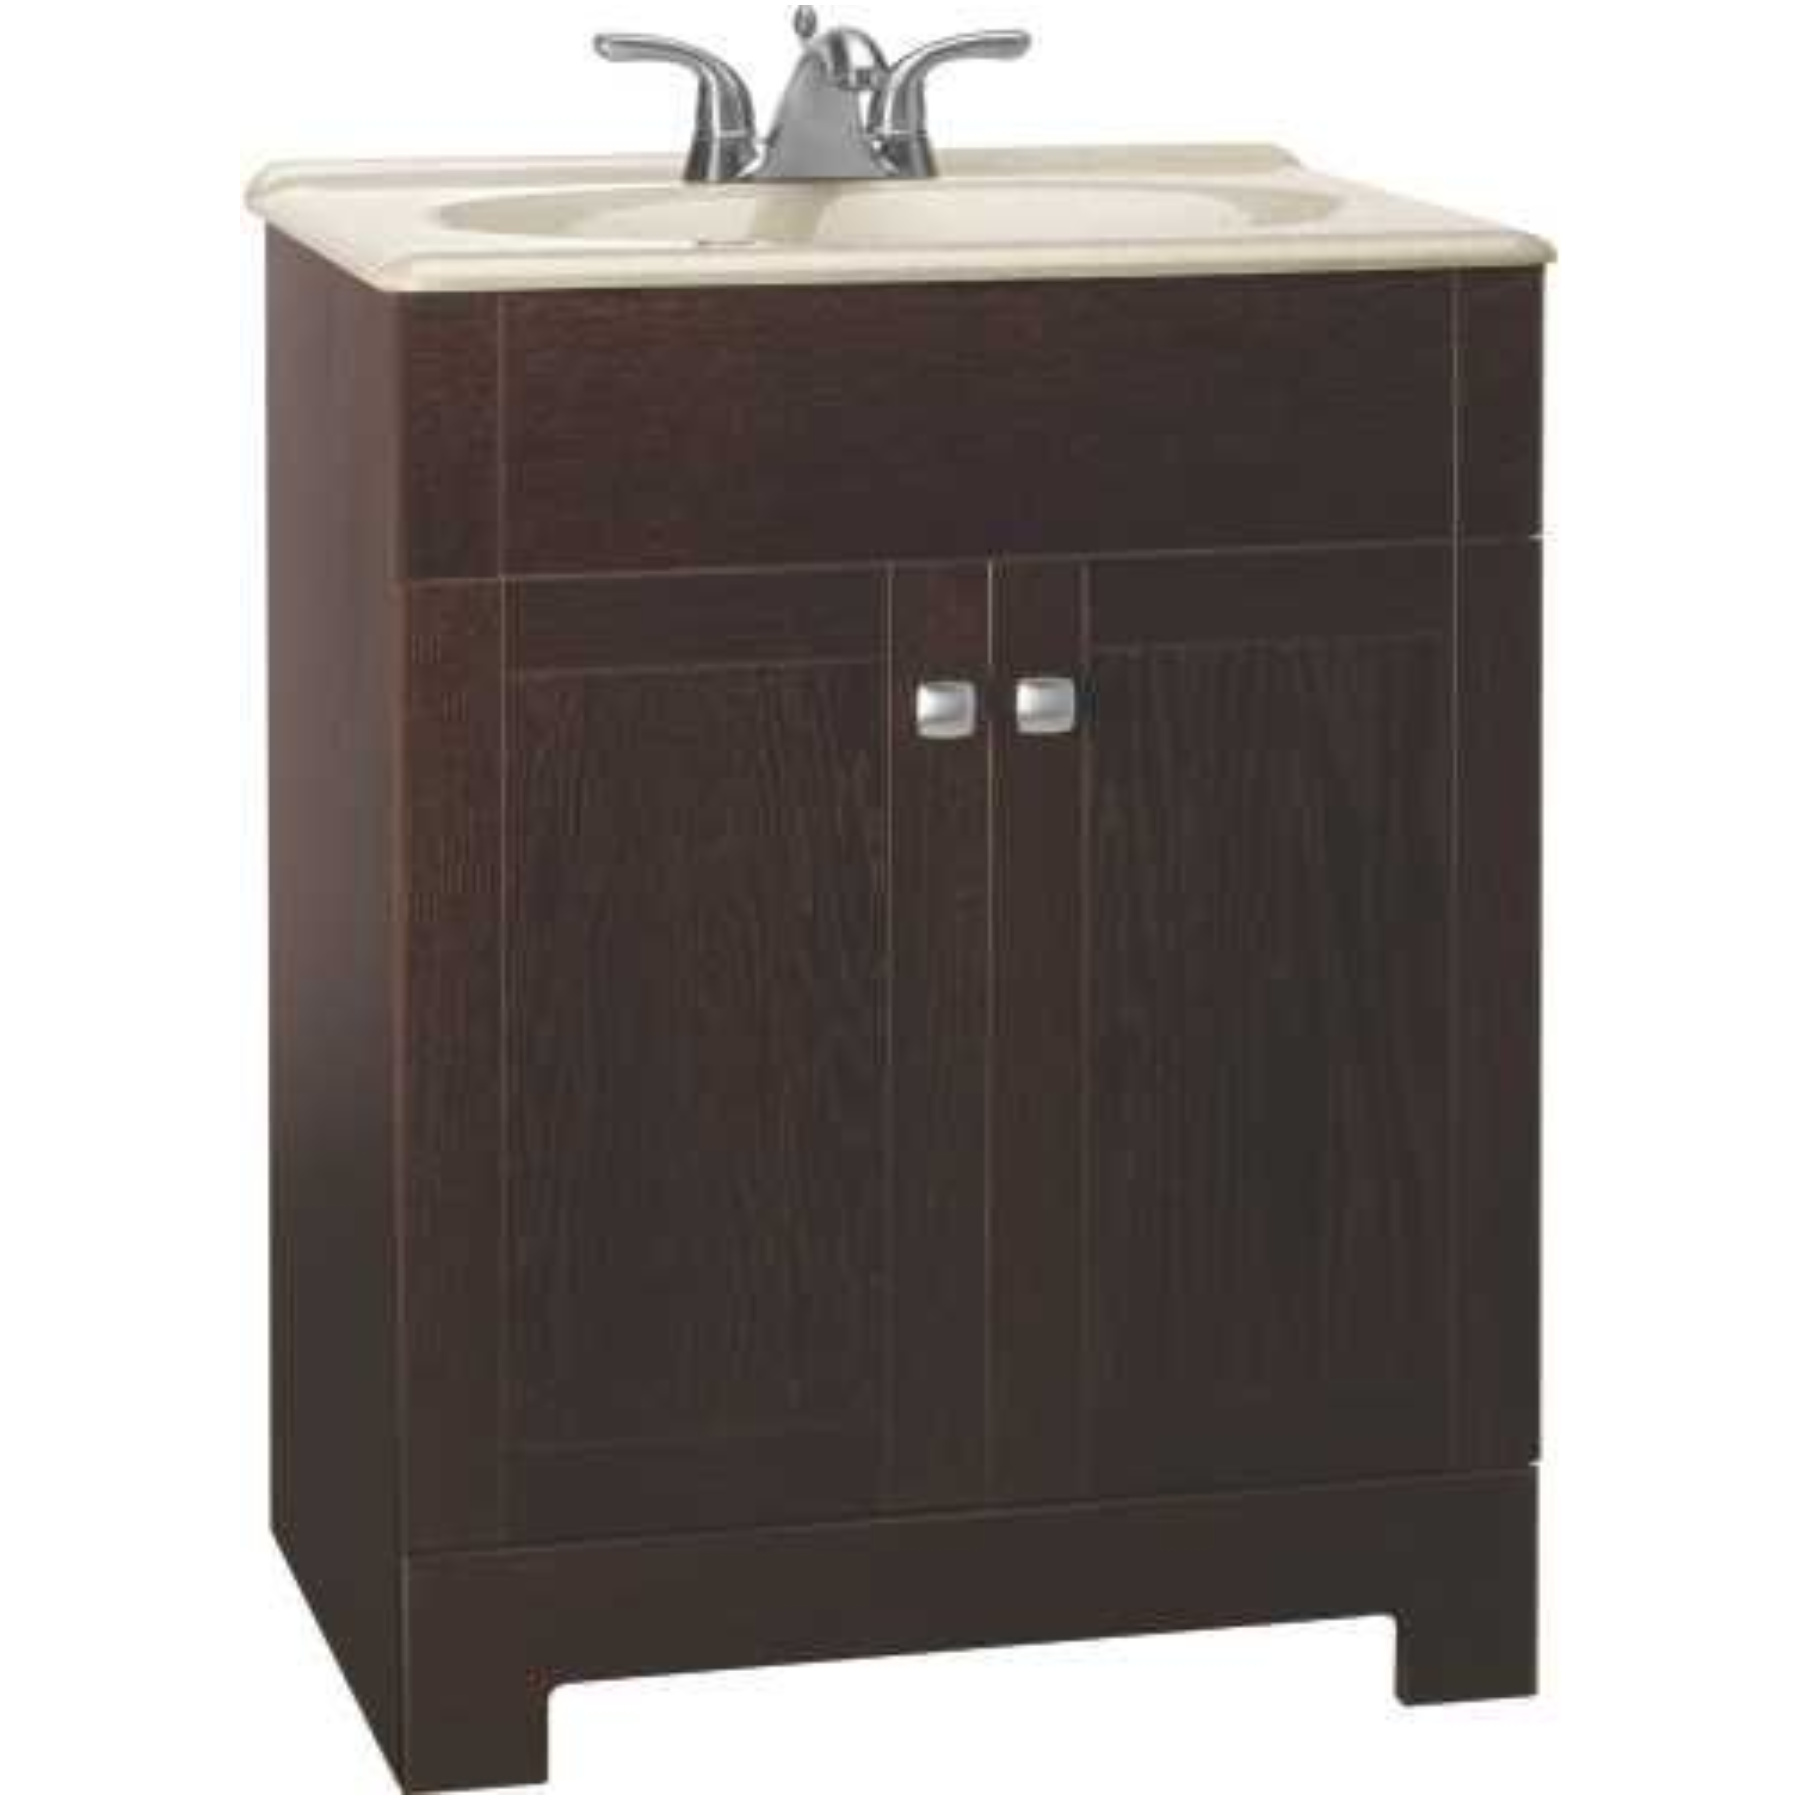 RSI HOME PRODUCTS SEDONA COMBO BATHROOM VANITY CABINET WITH BEIGE SST TOP, FULLY ASSEMBLED, JAVA, 30""